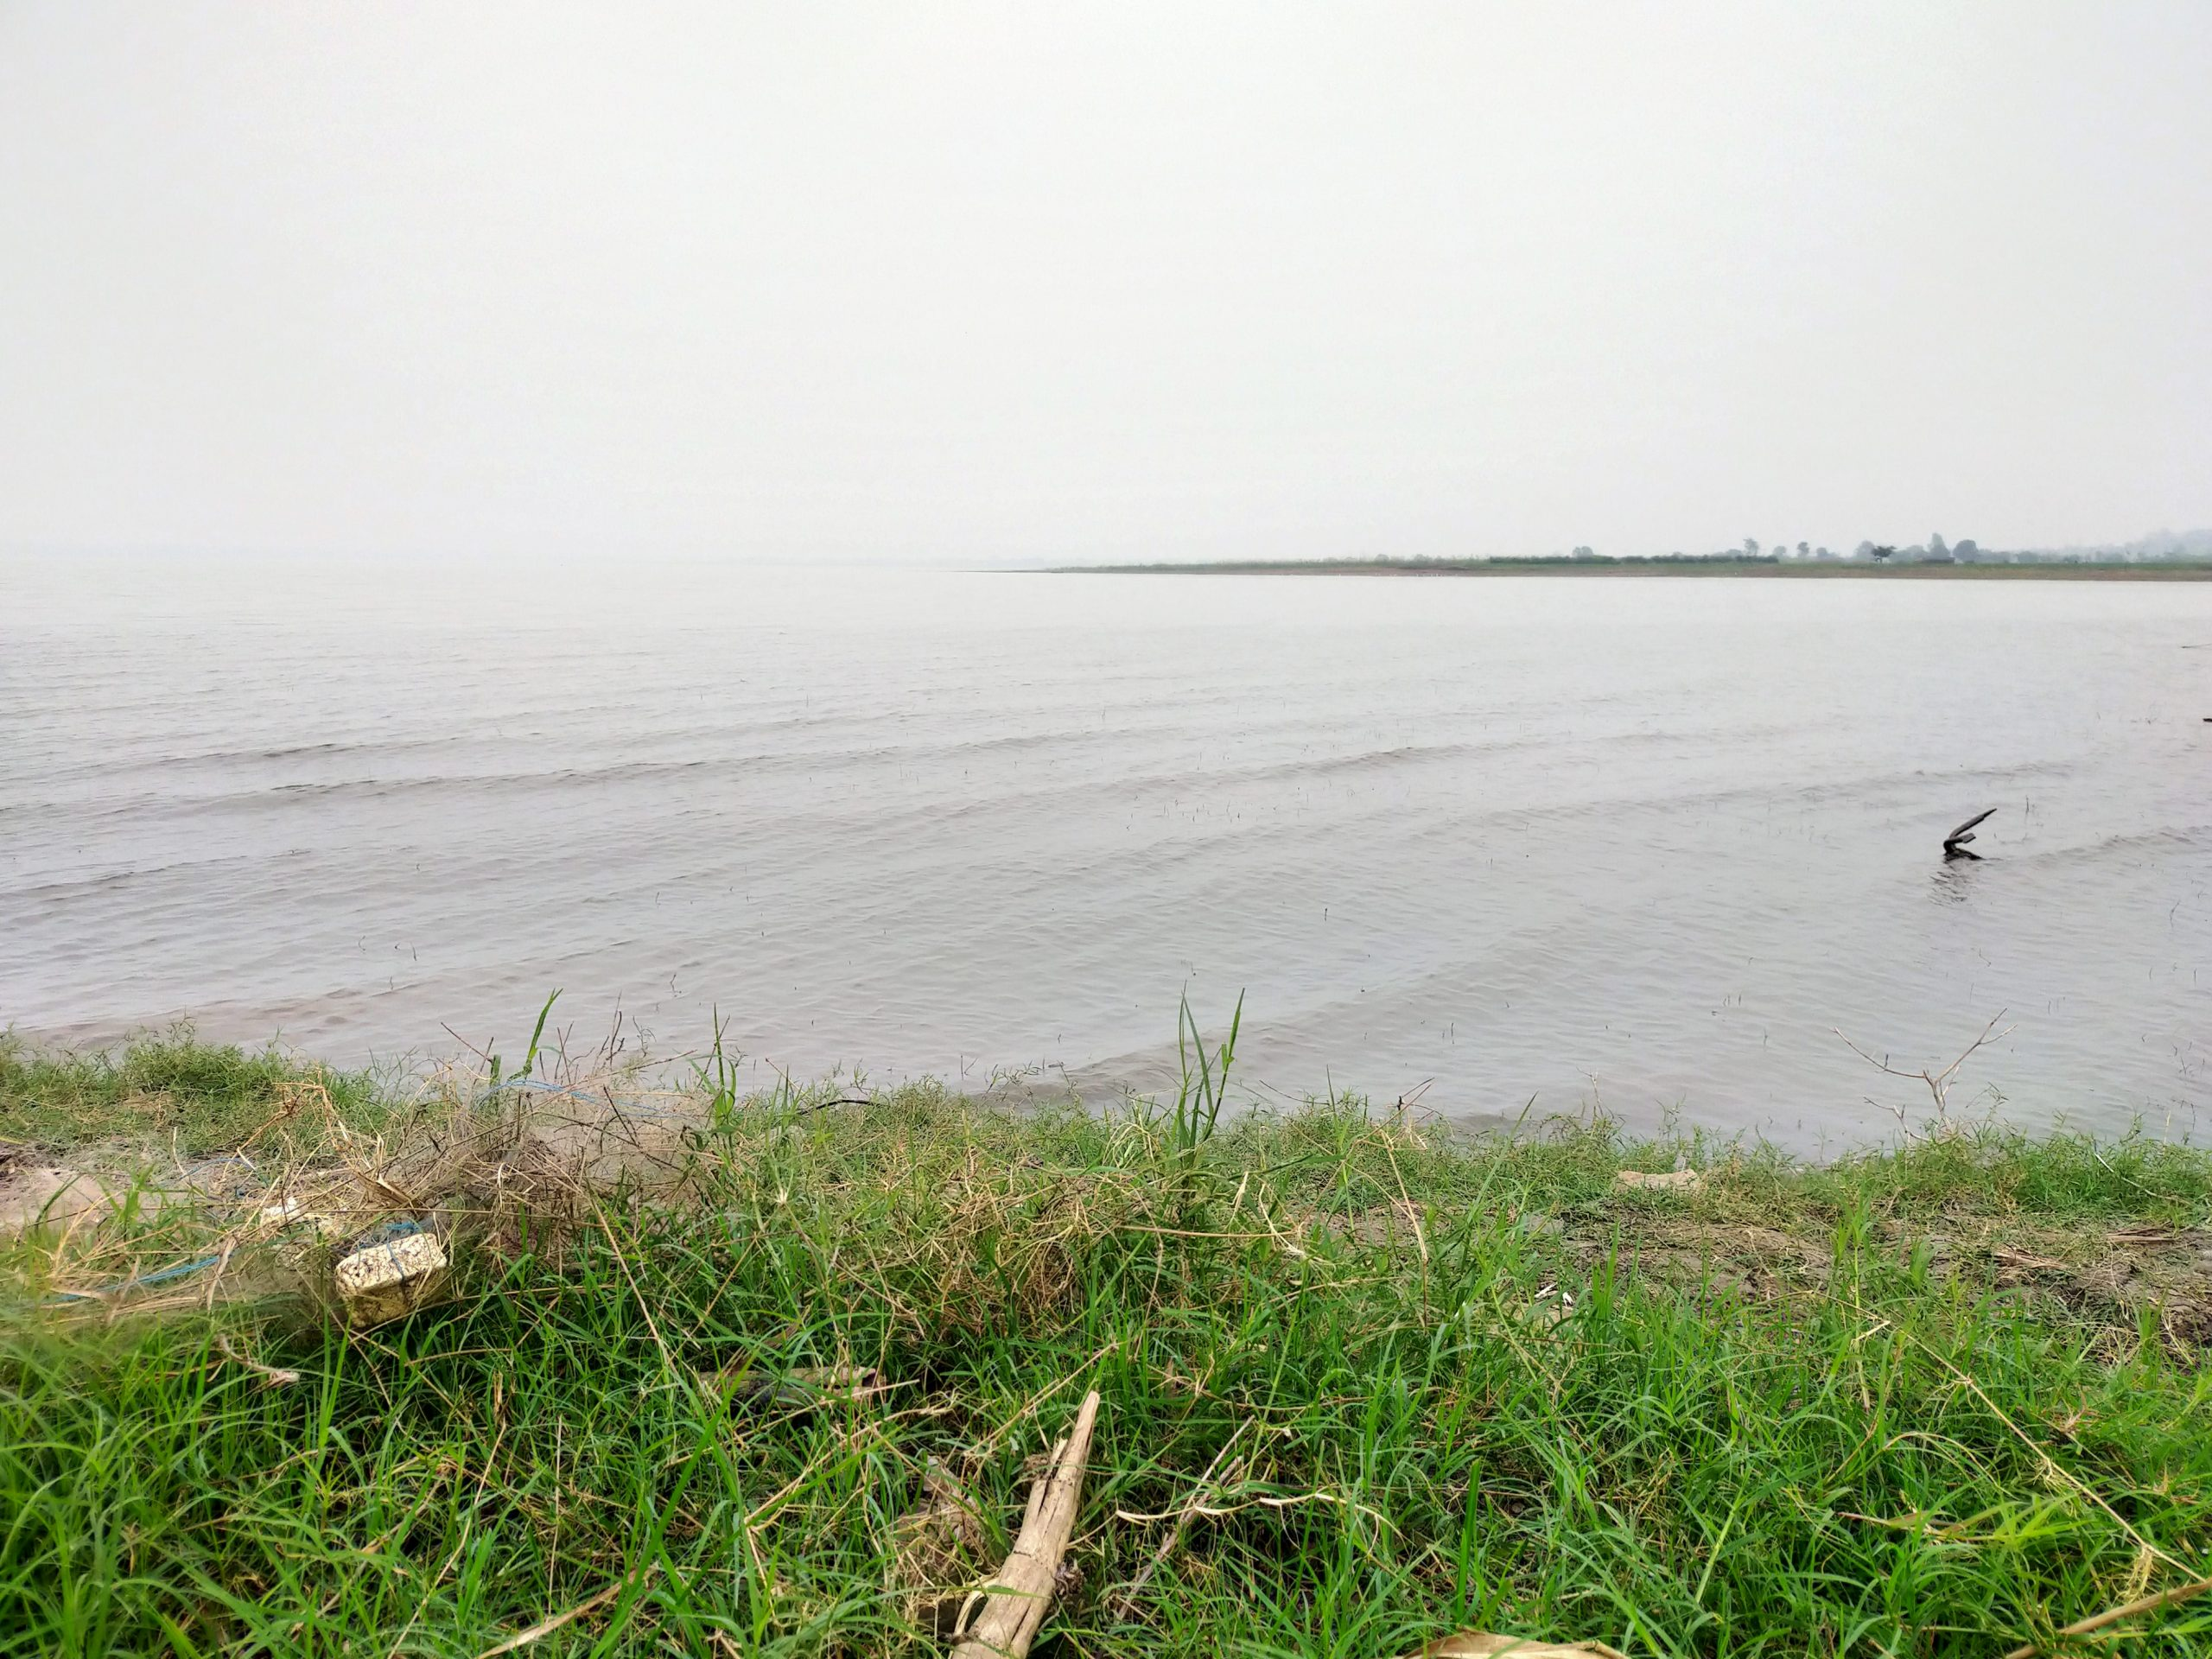 Shore of a water resource